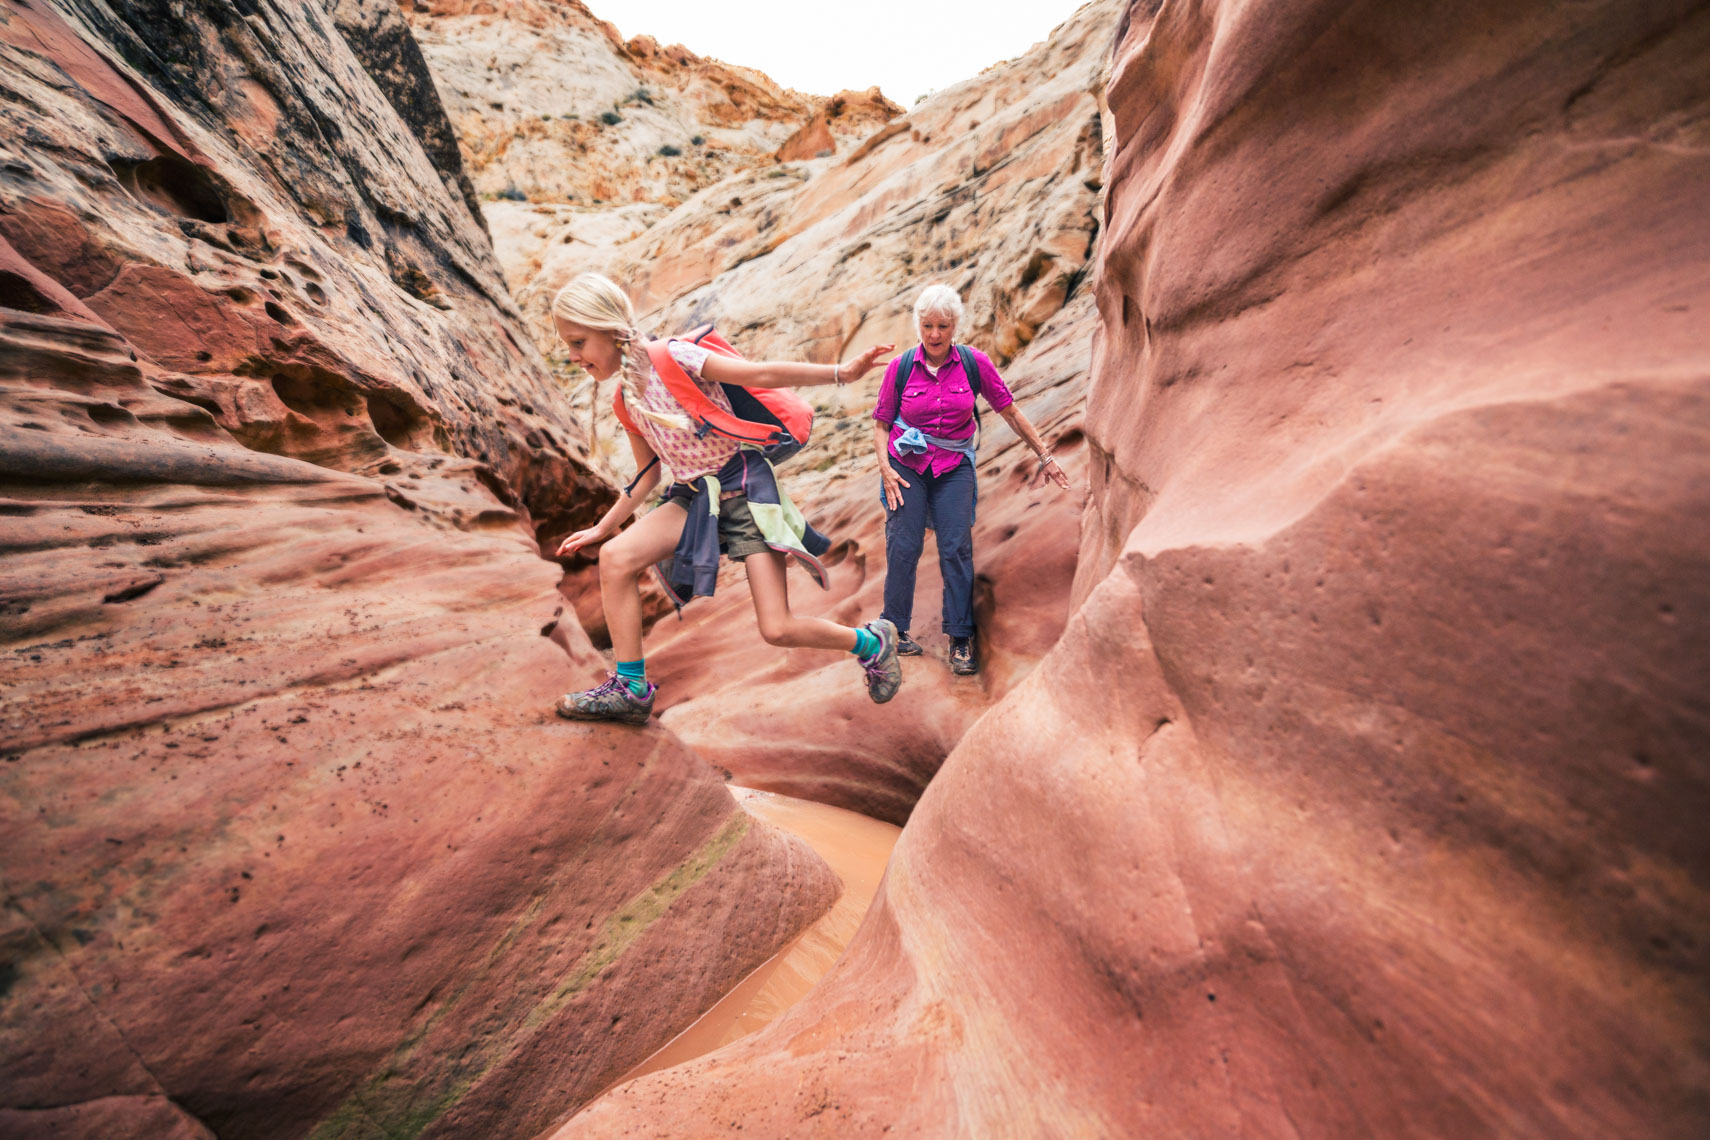 Michael Kunde Photo | Utah Tourism | Road to Mighty | Overview